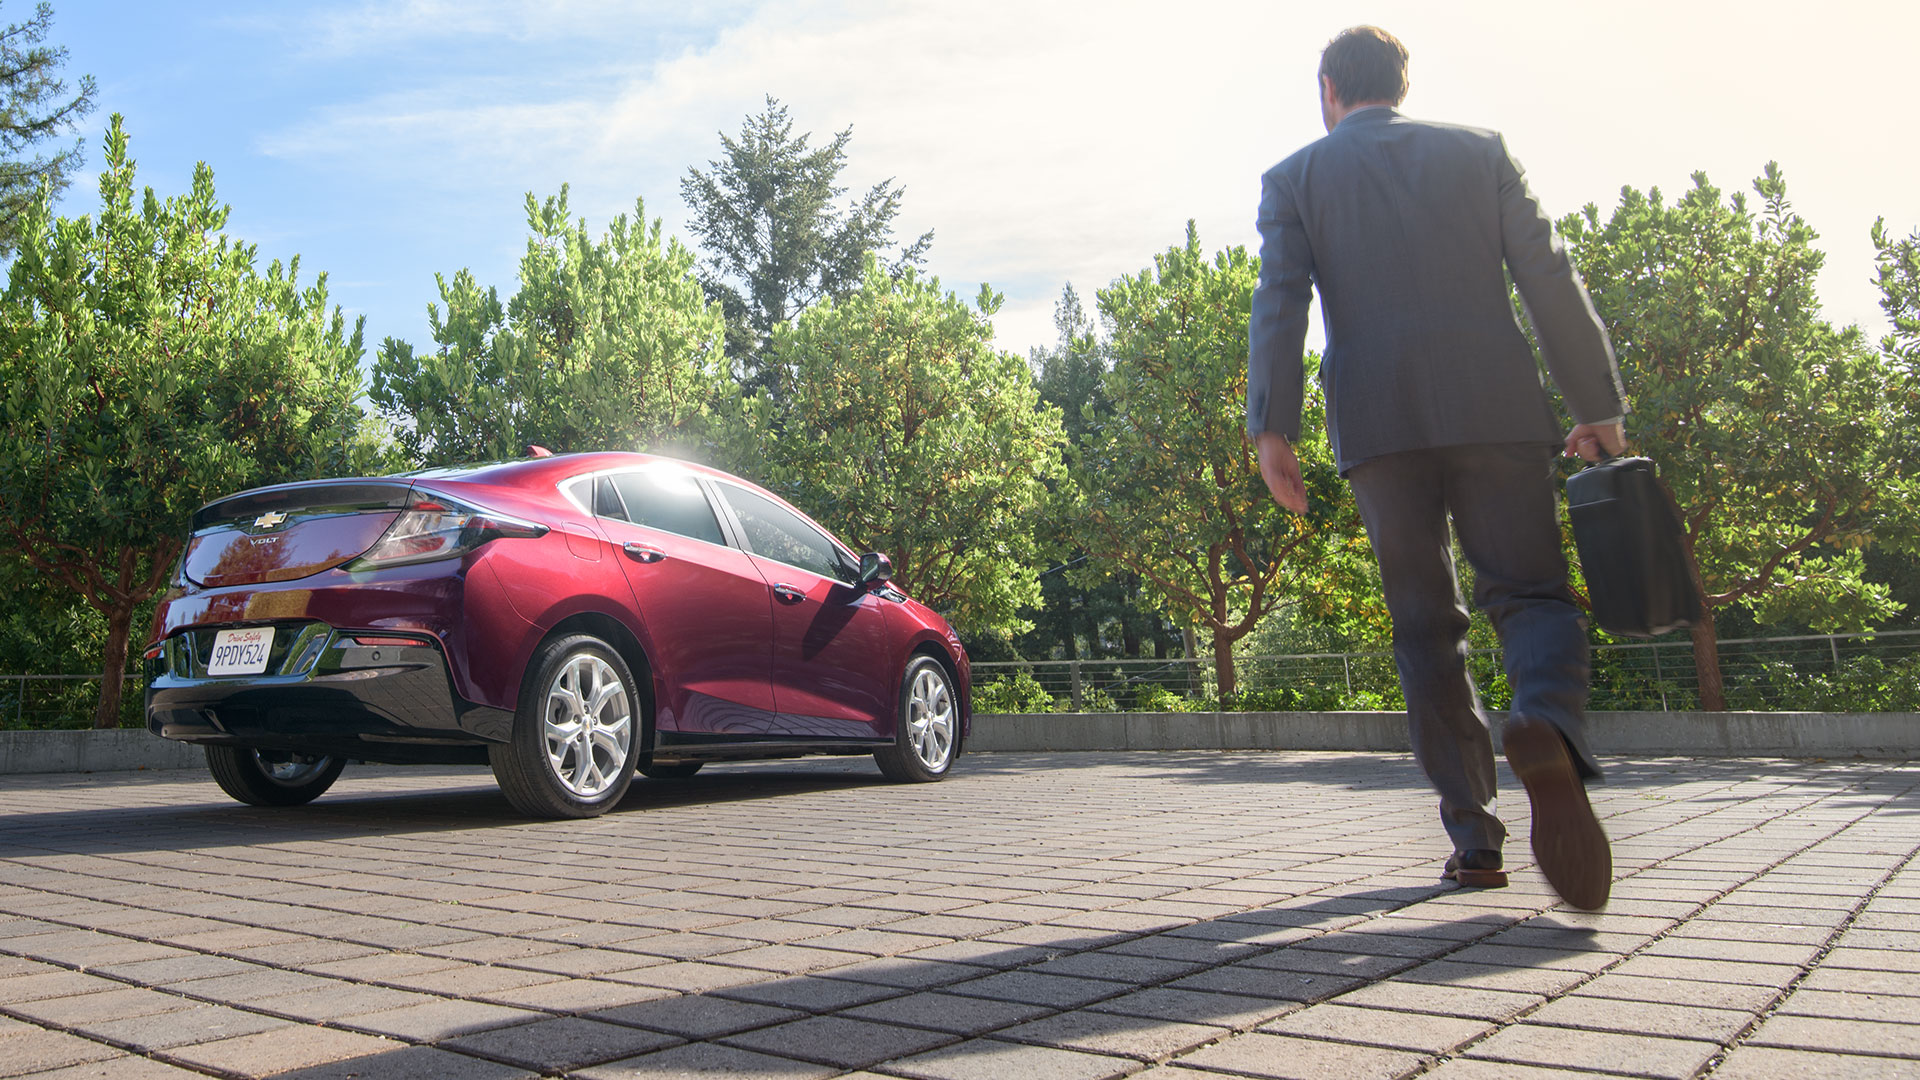 Valley Chevy - Chevrolet 2017 Volt: Red Car Parked